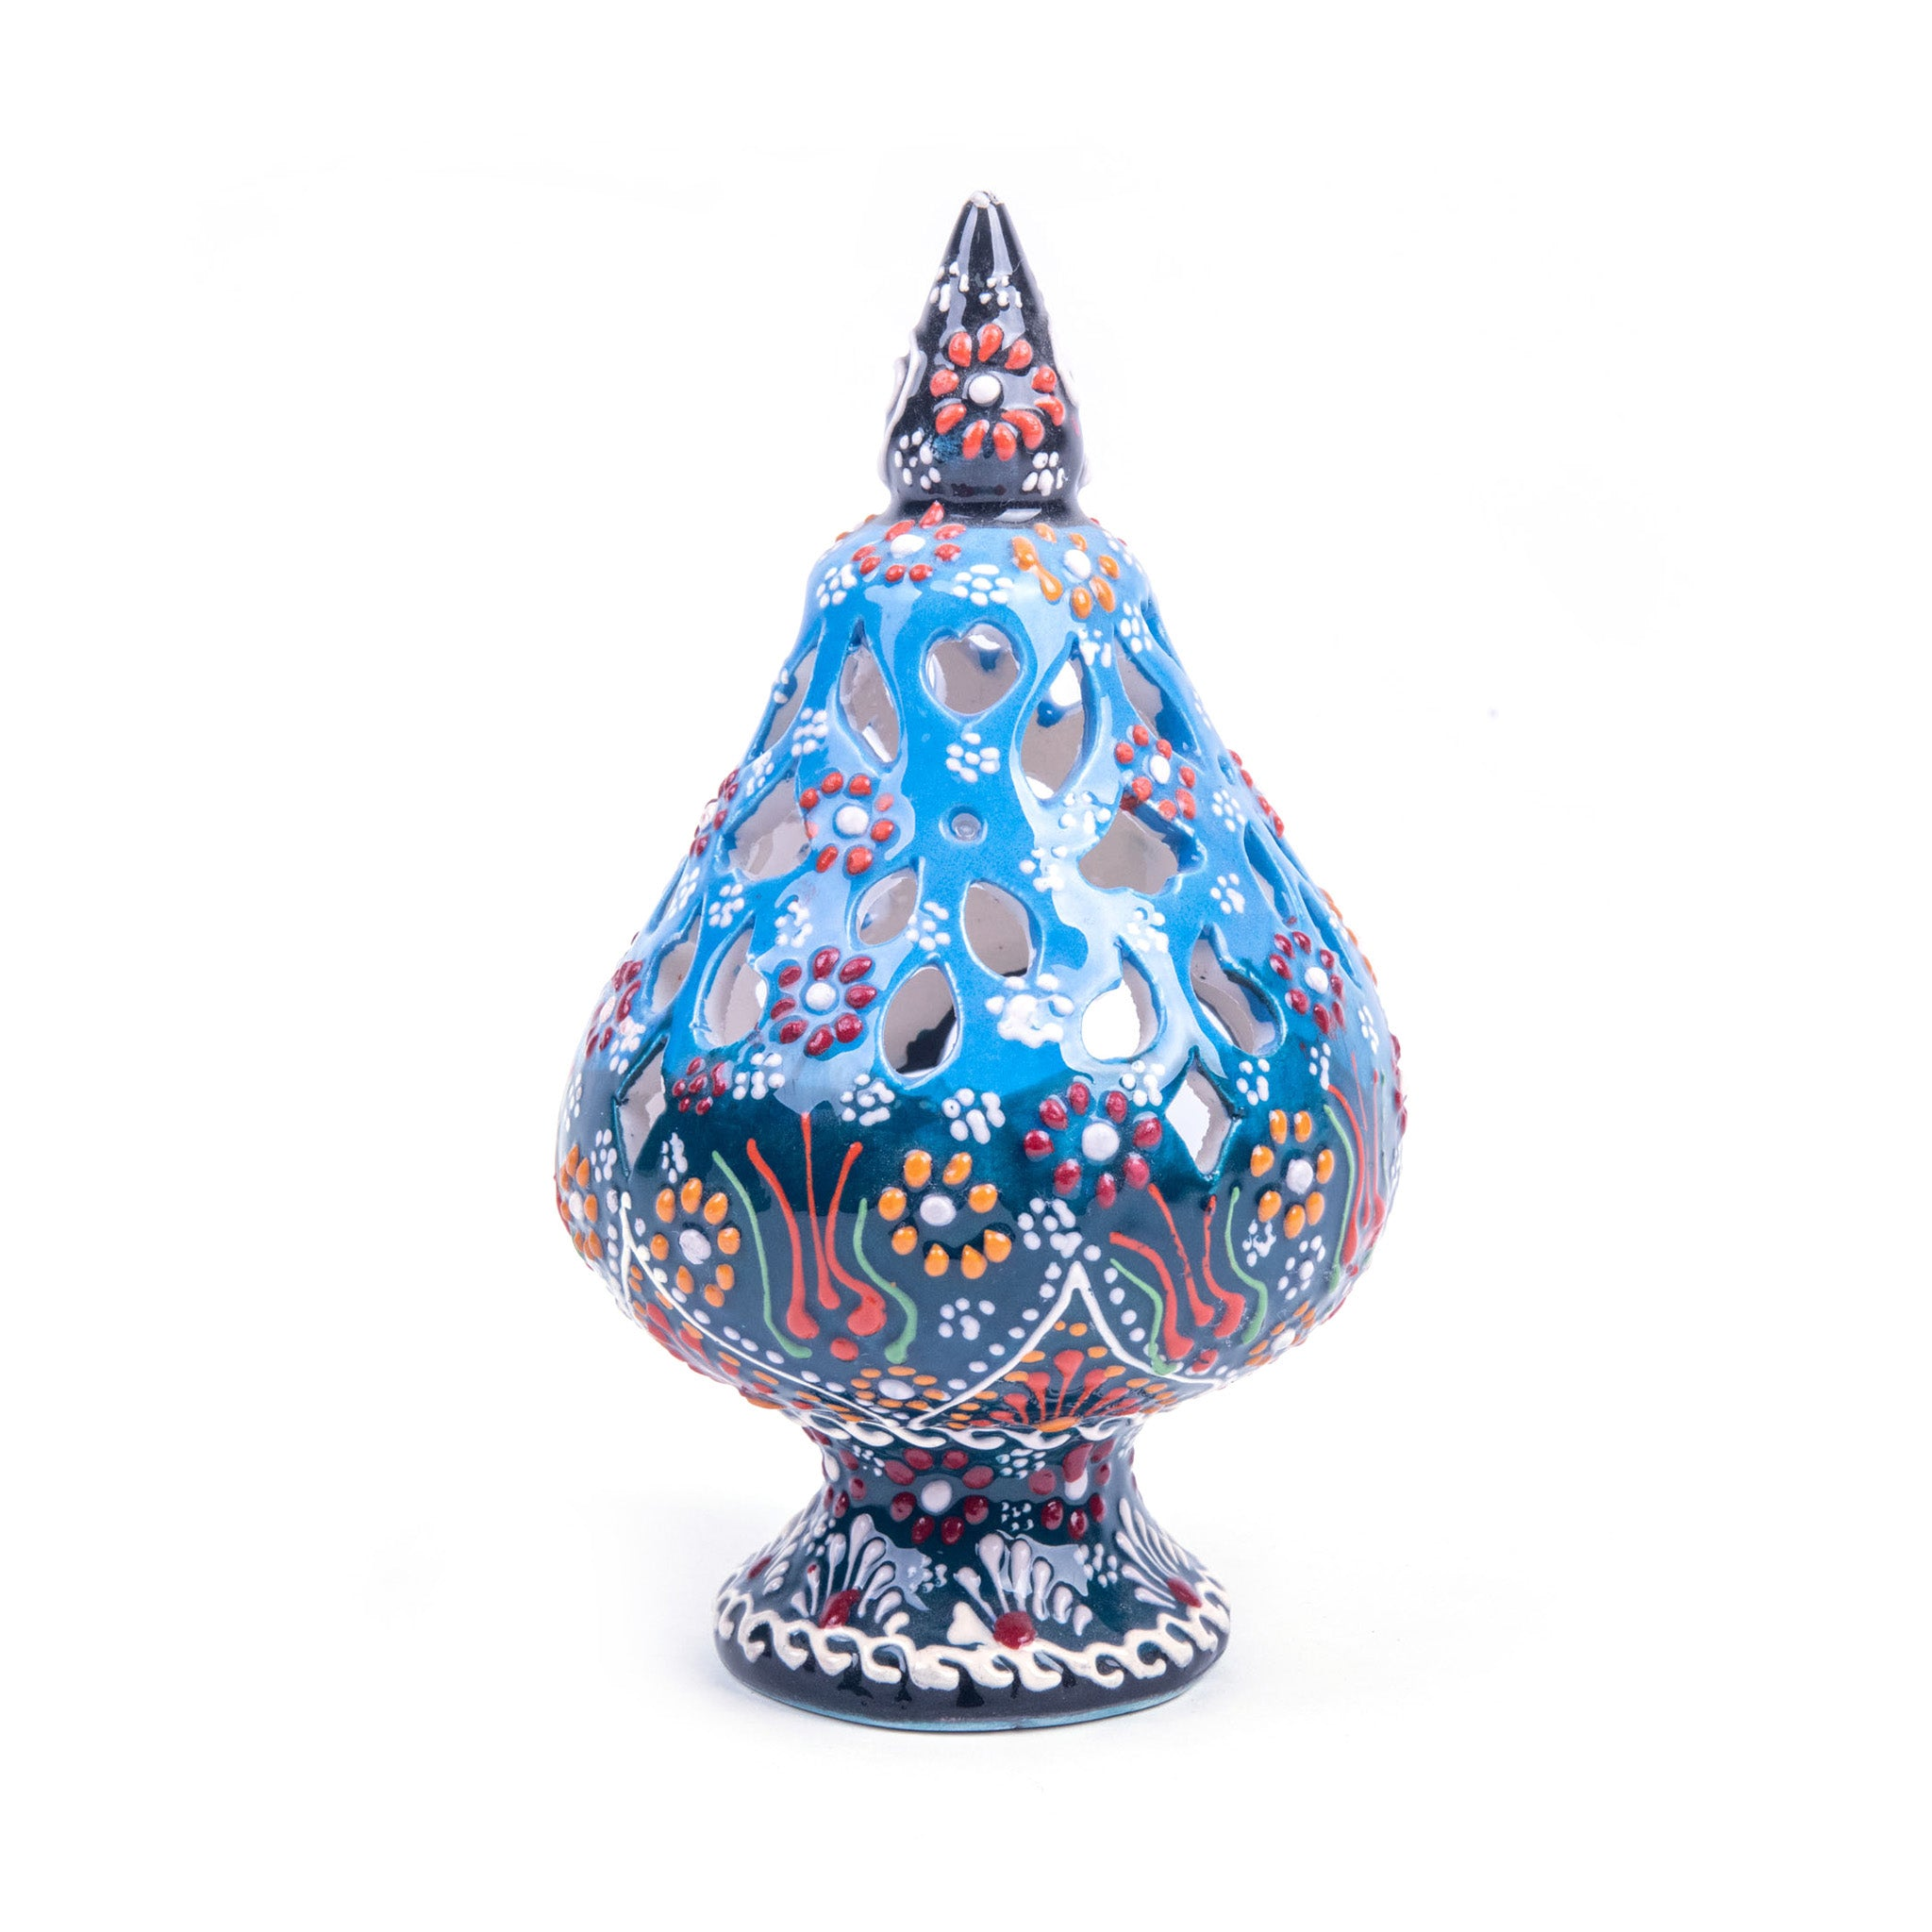 Turkish Ceramic Iznik Design Handmade Candle Holder - Blue